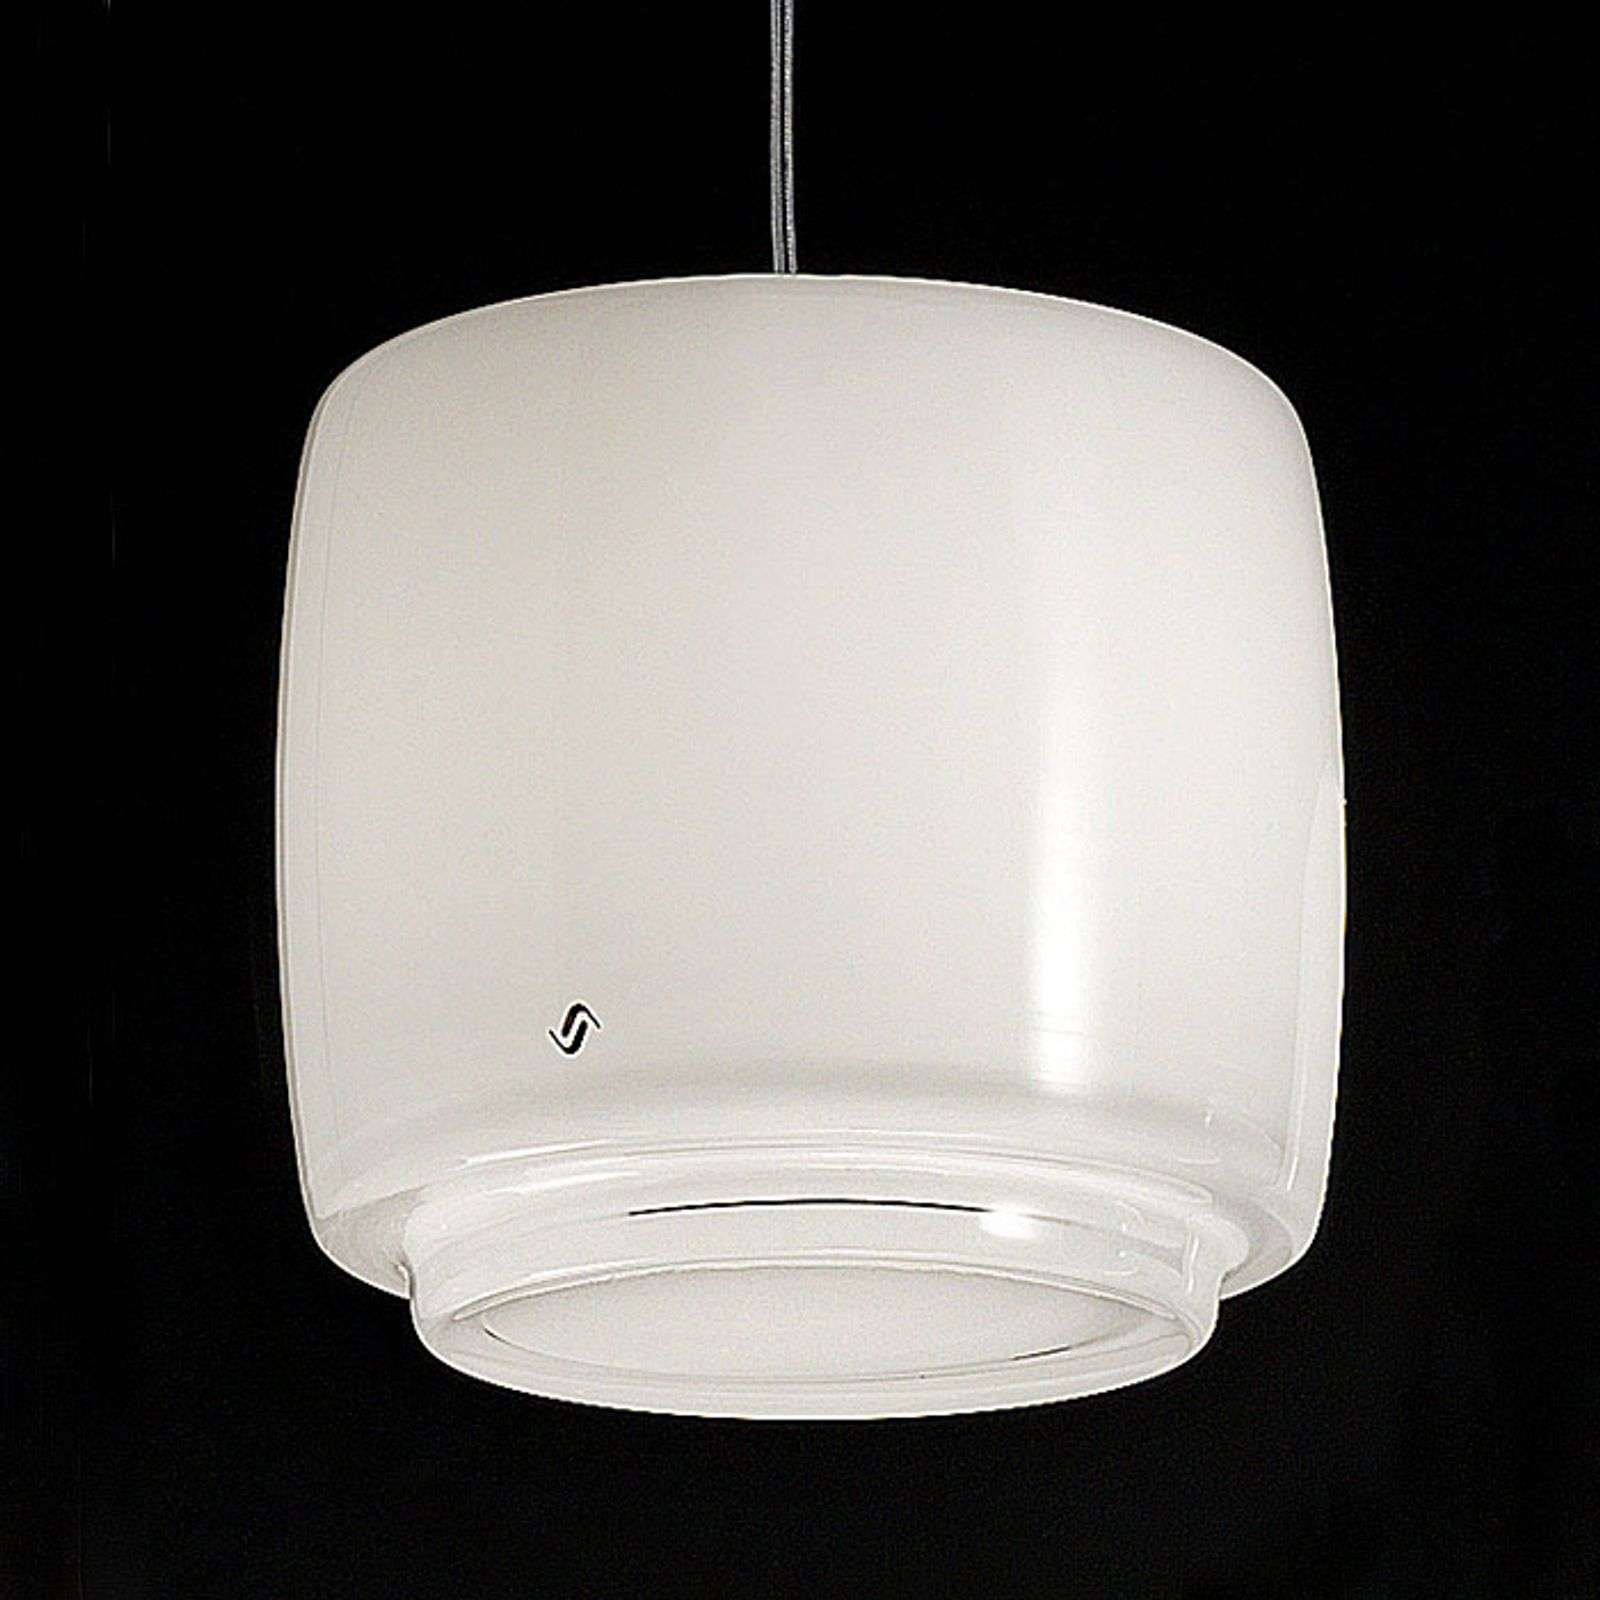 Suspension en verre Bot, Ø 16 cm